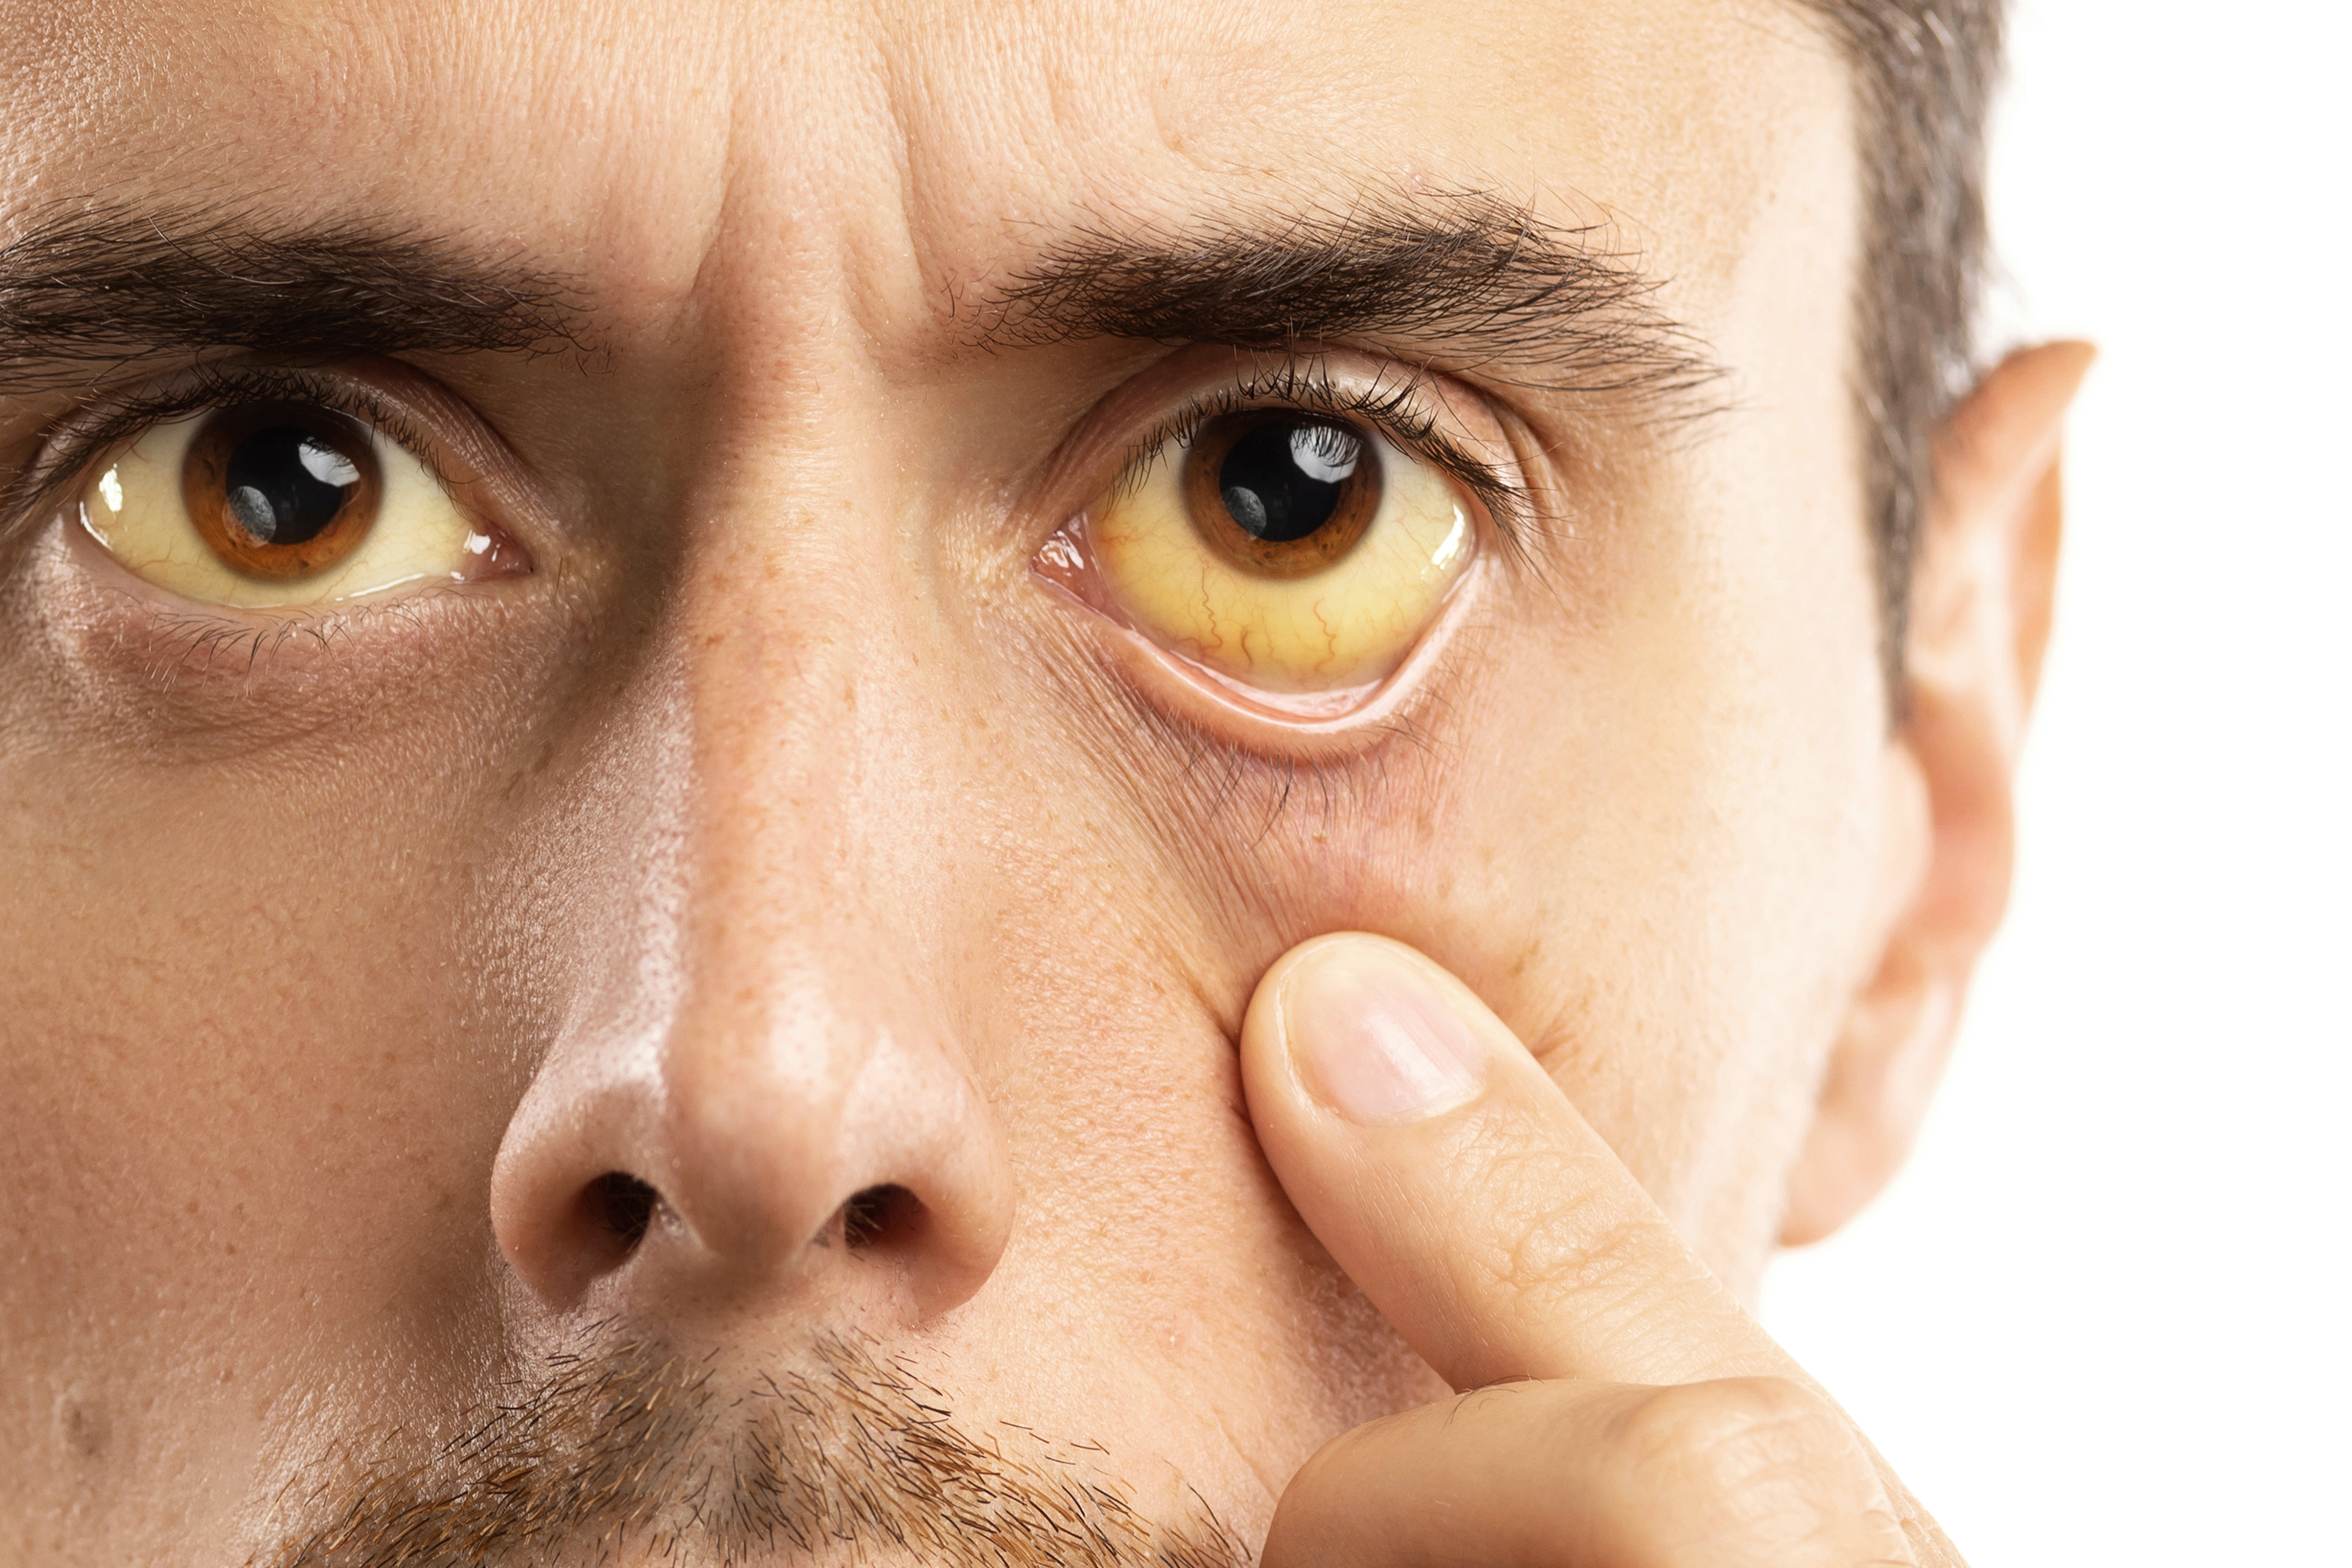 Yellowish eyes is sign of problems with liver, viral infection or other disease